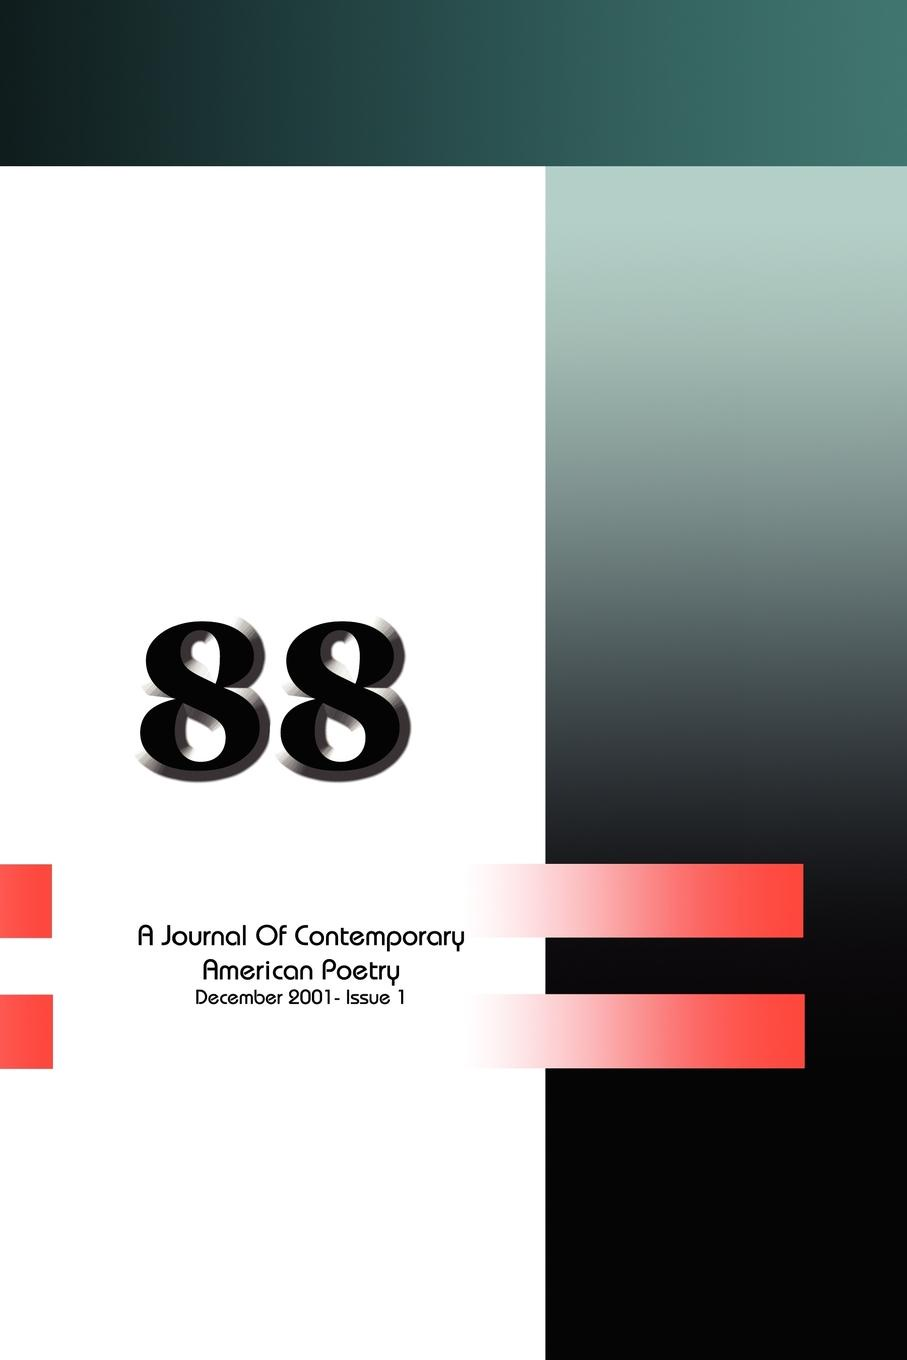 88. A Journal of Contemporary American Poetry: December 2001-Issue 1